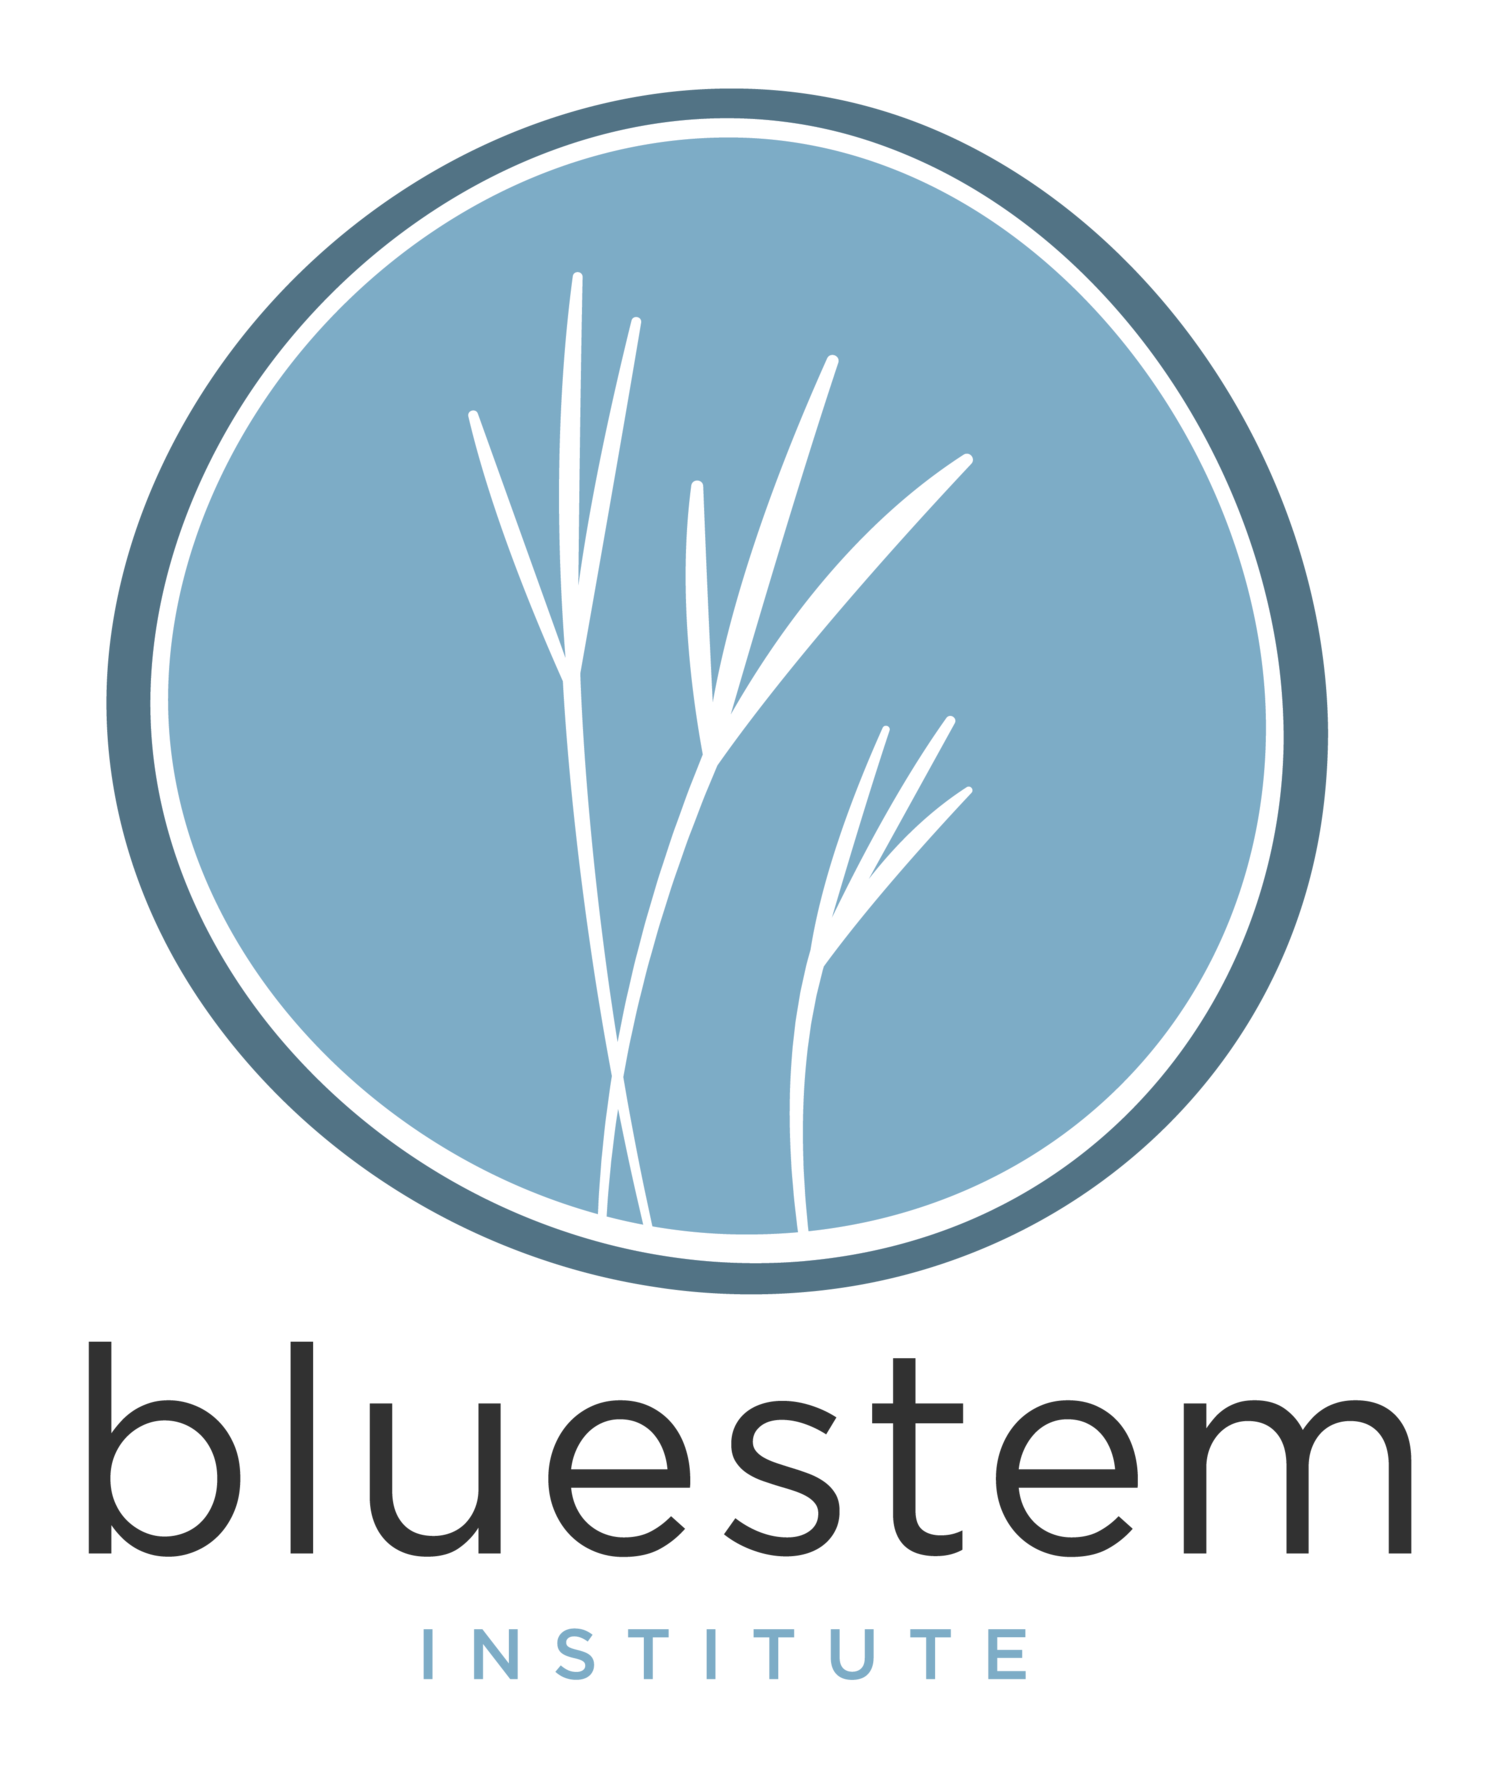 The Bluestem Institute at Ames High School